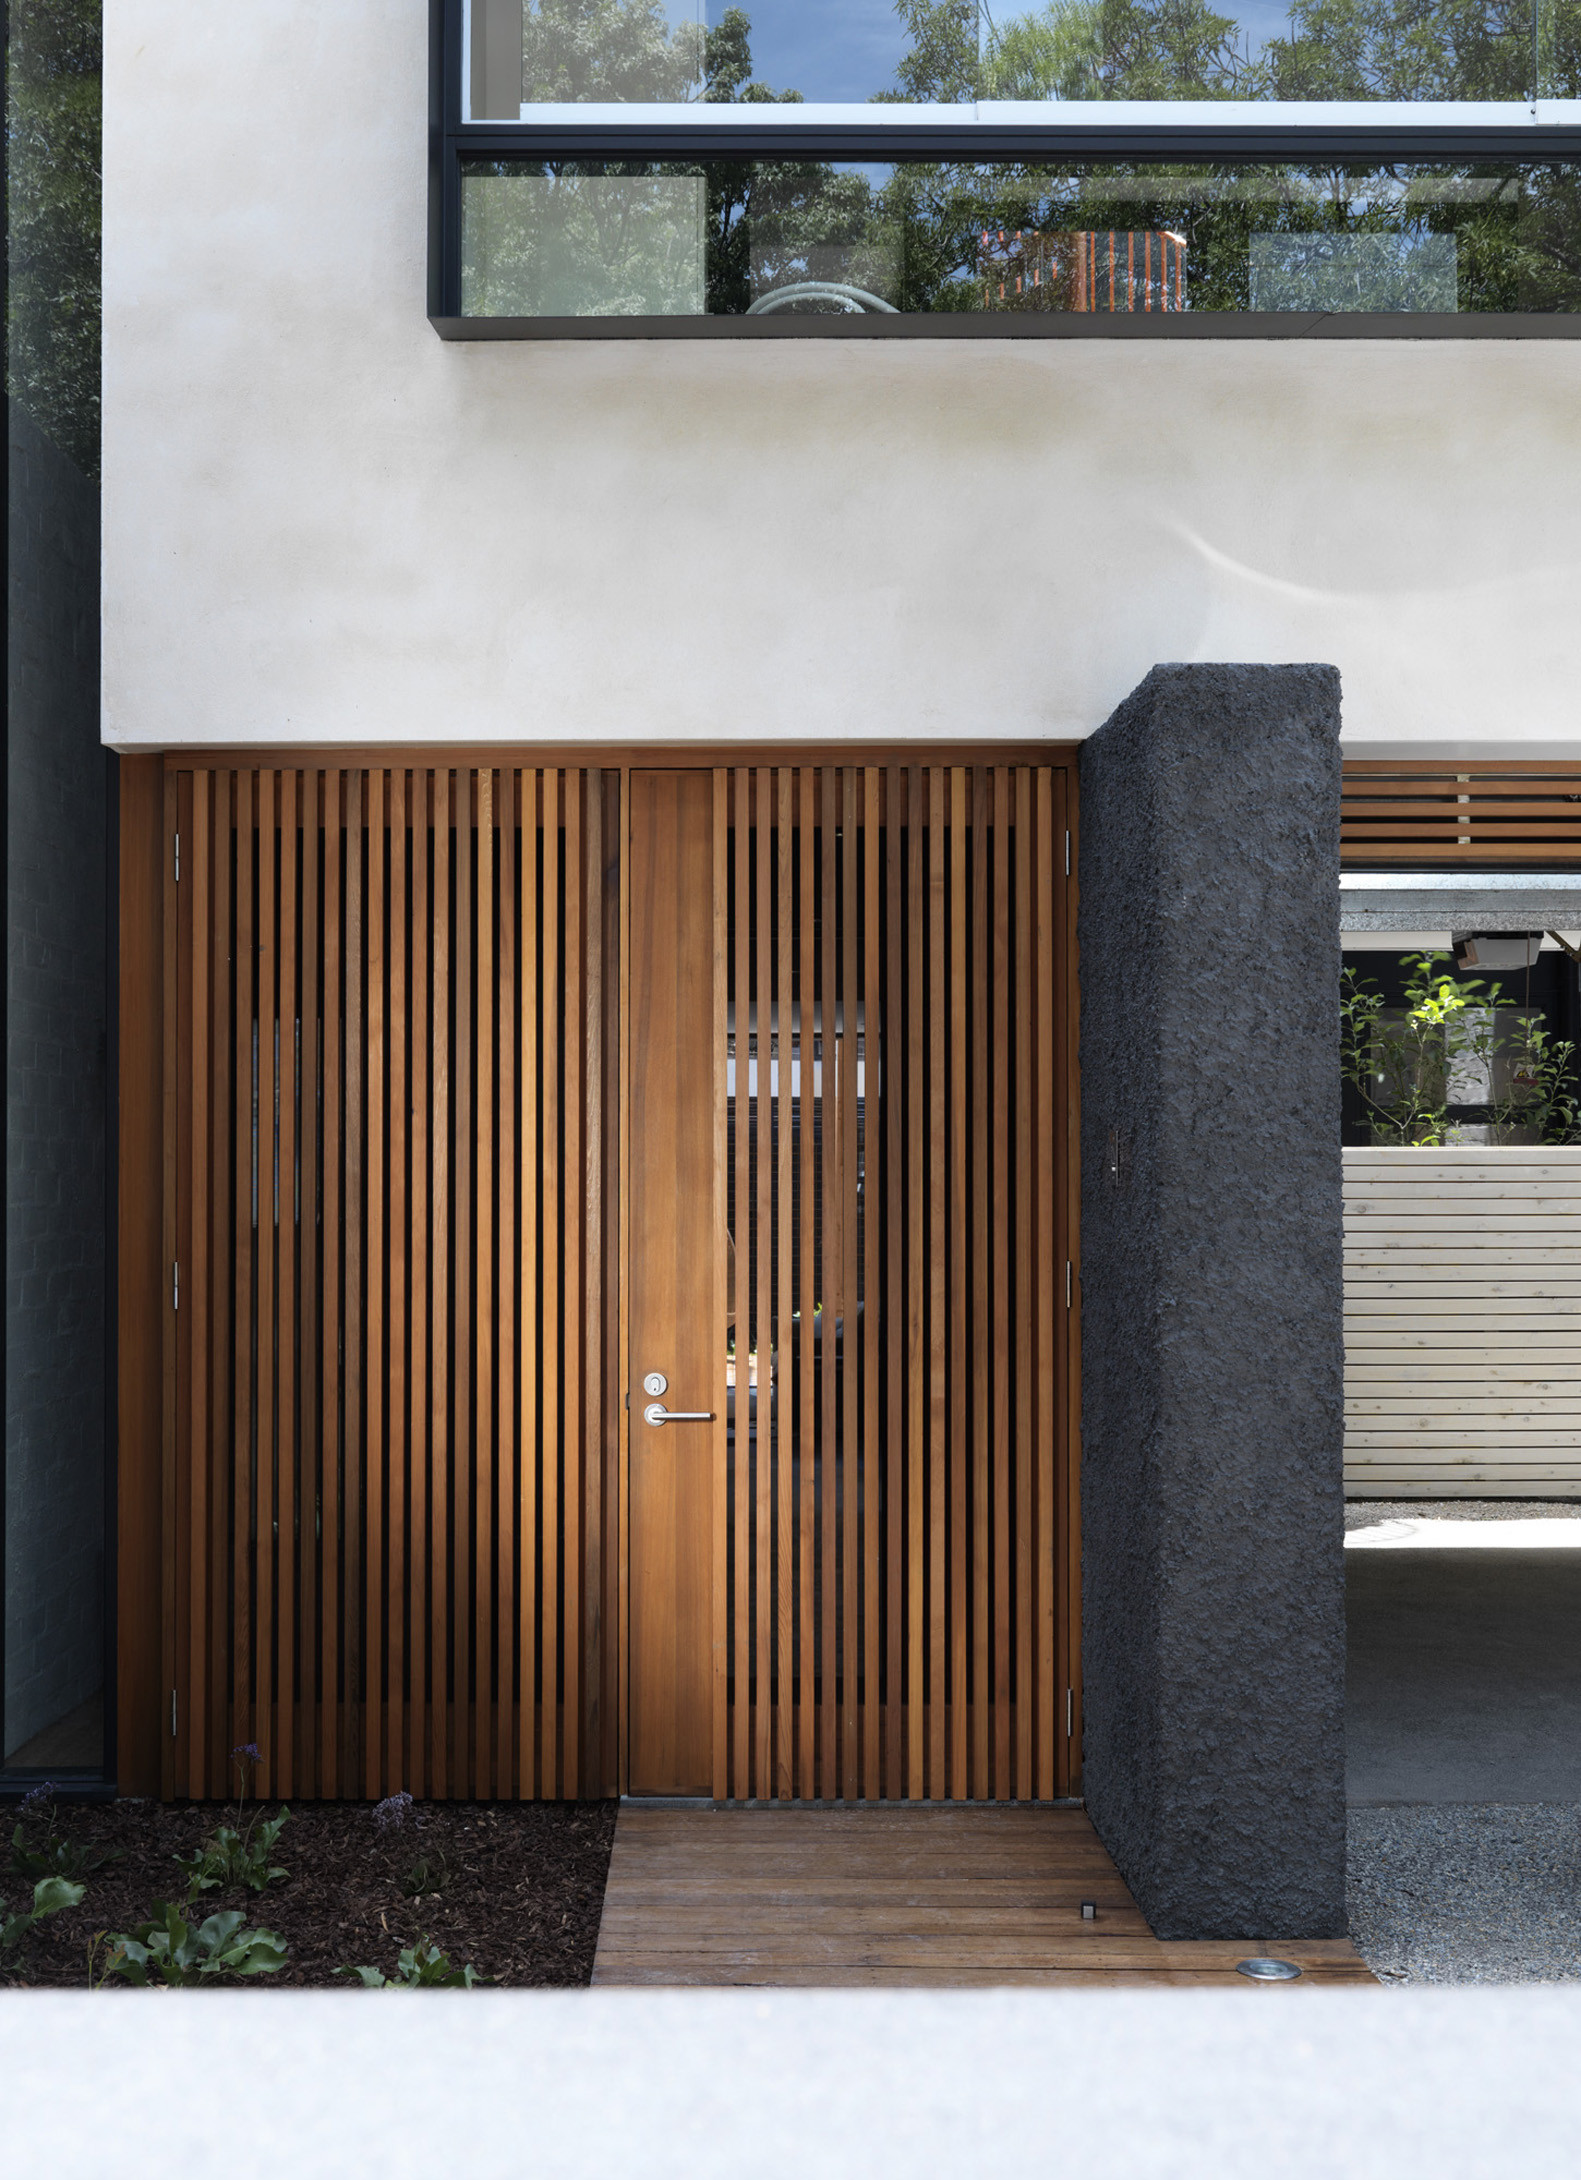 gallery of elwood townhouses mcallister alcock architects 10